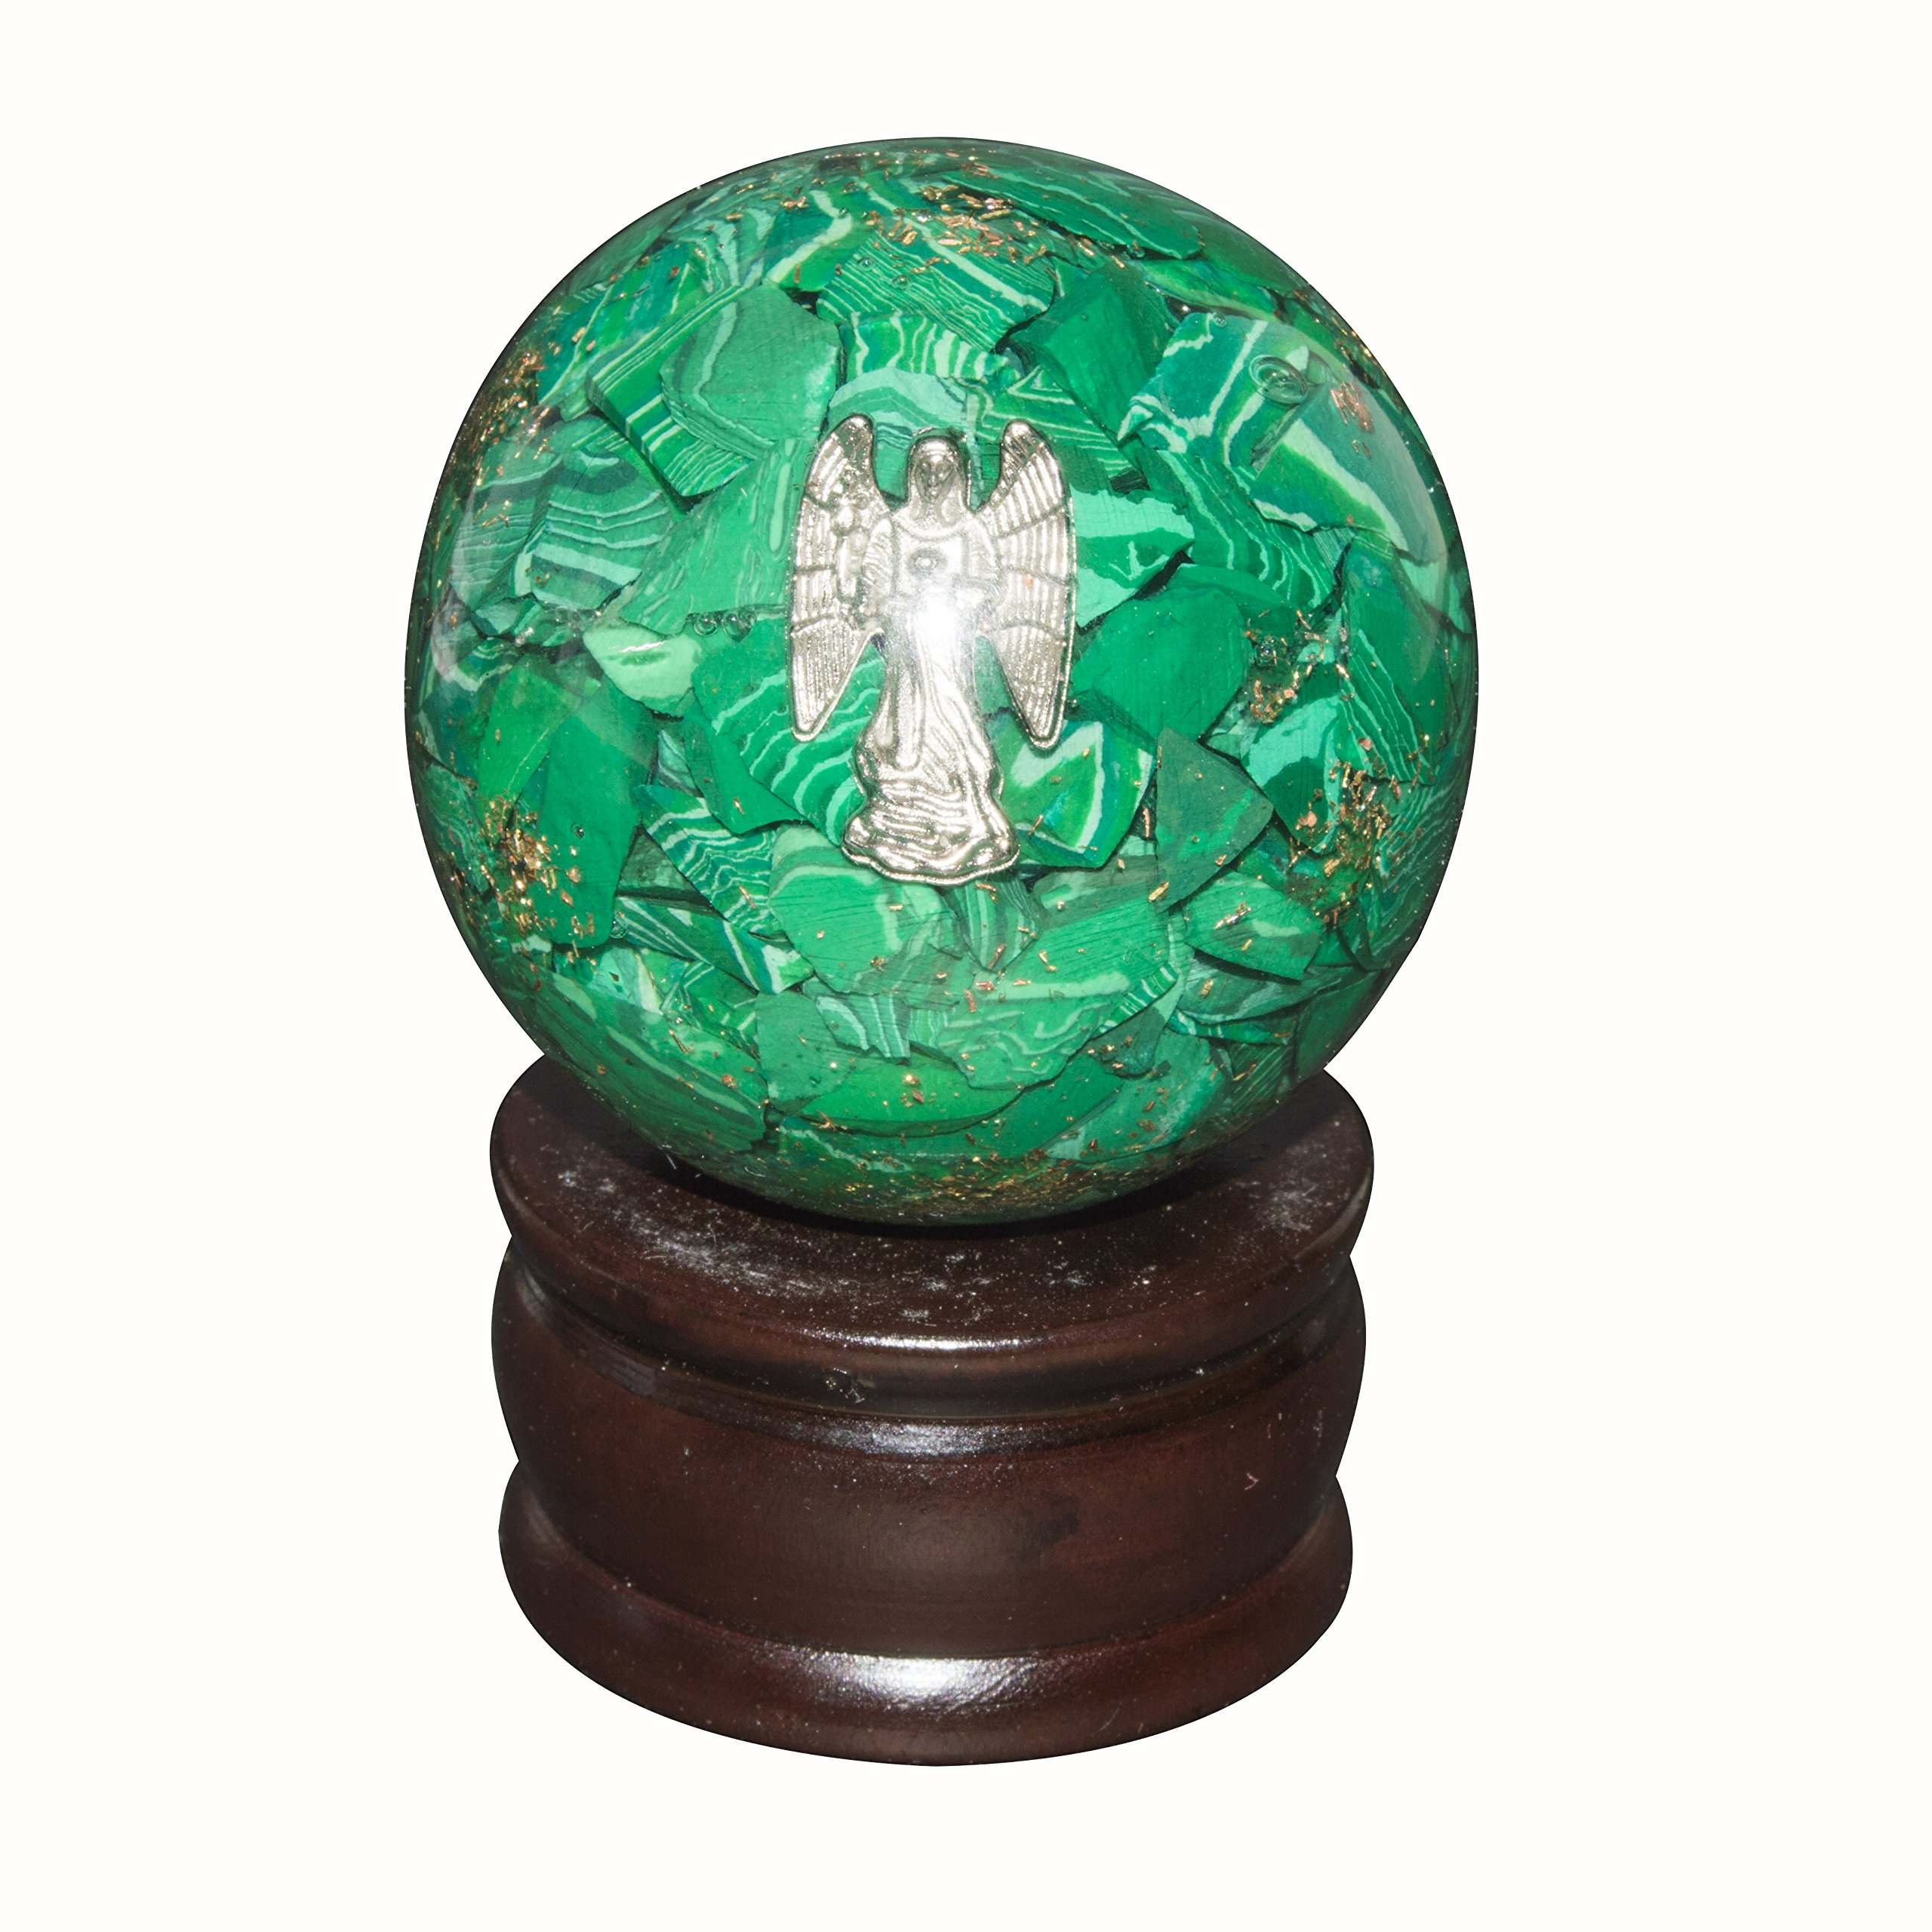 Crocon Green Malachite Orgone Sphere Ball Angel Symbol Energy Generator For Reiki Healing Chakra Balancing & EMF Protection Size: 50-60mm